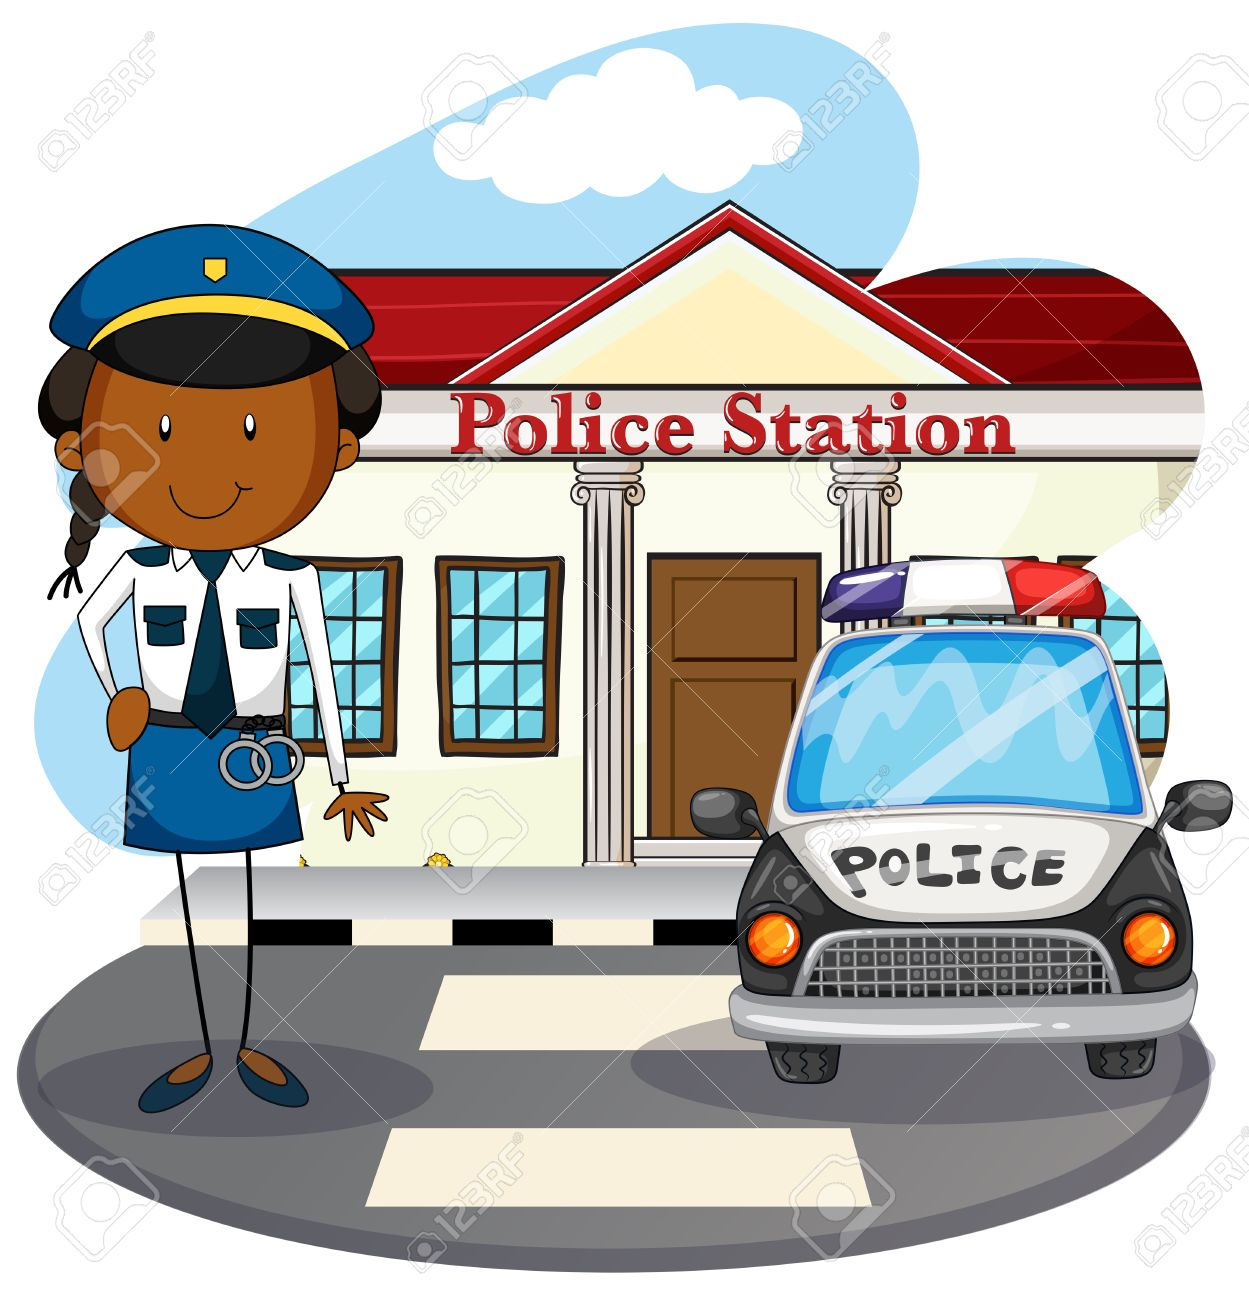 police officer working at police station illustration royalty free rh 123rf com police station pictures clip art police department clip art